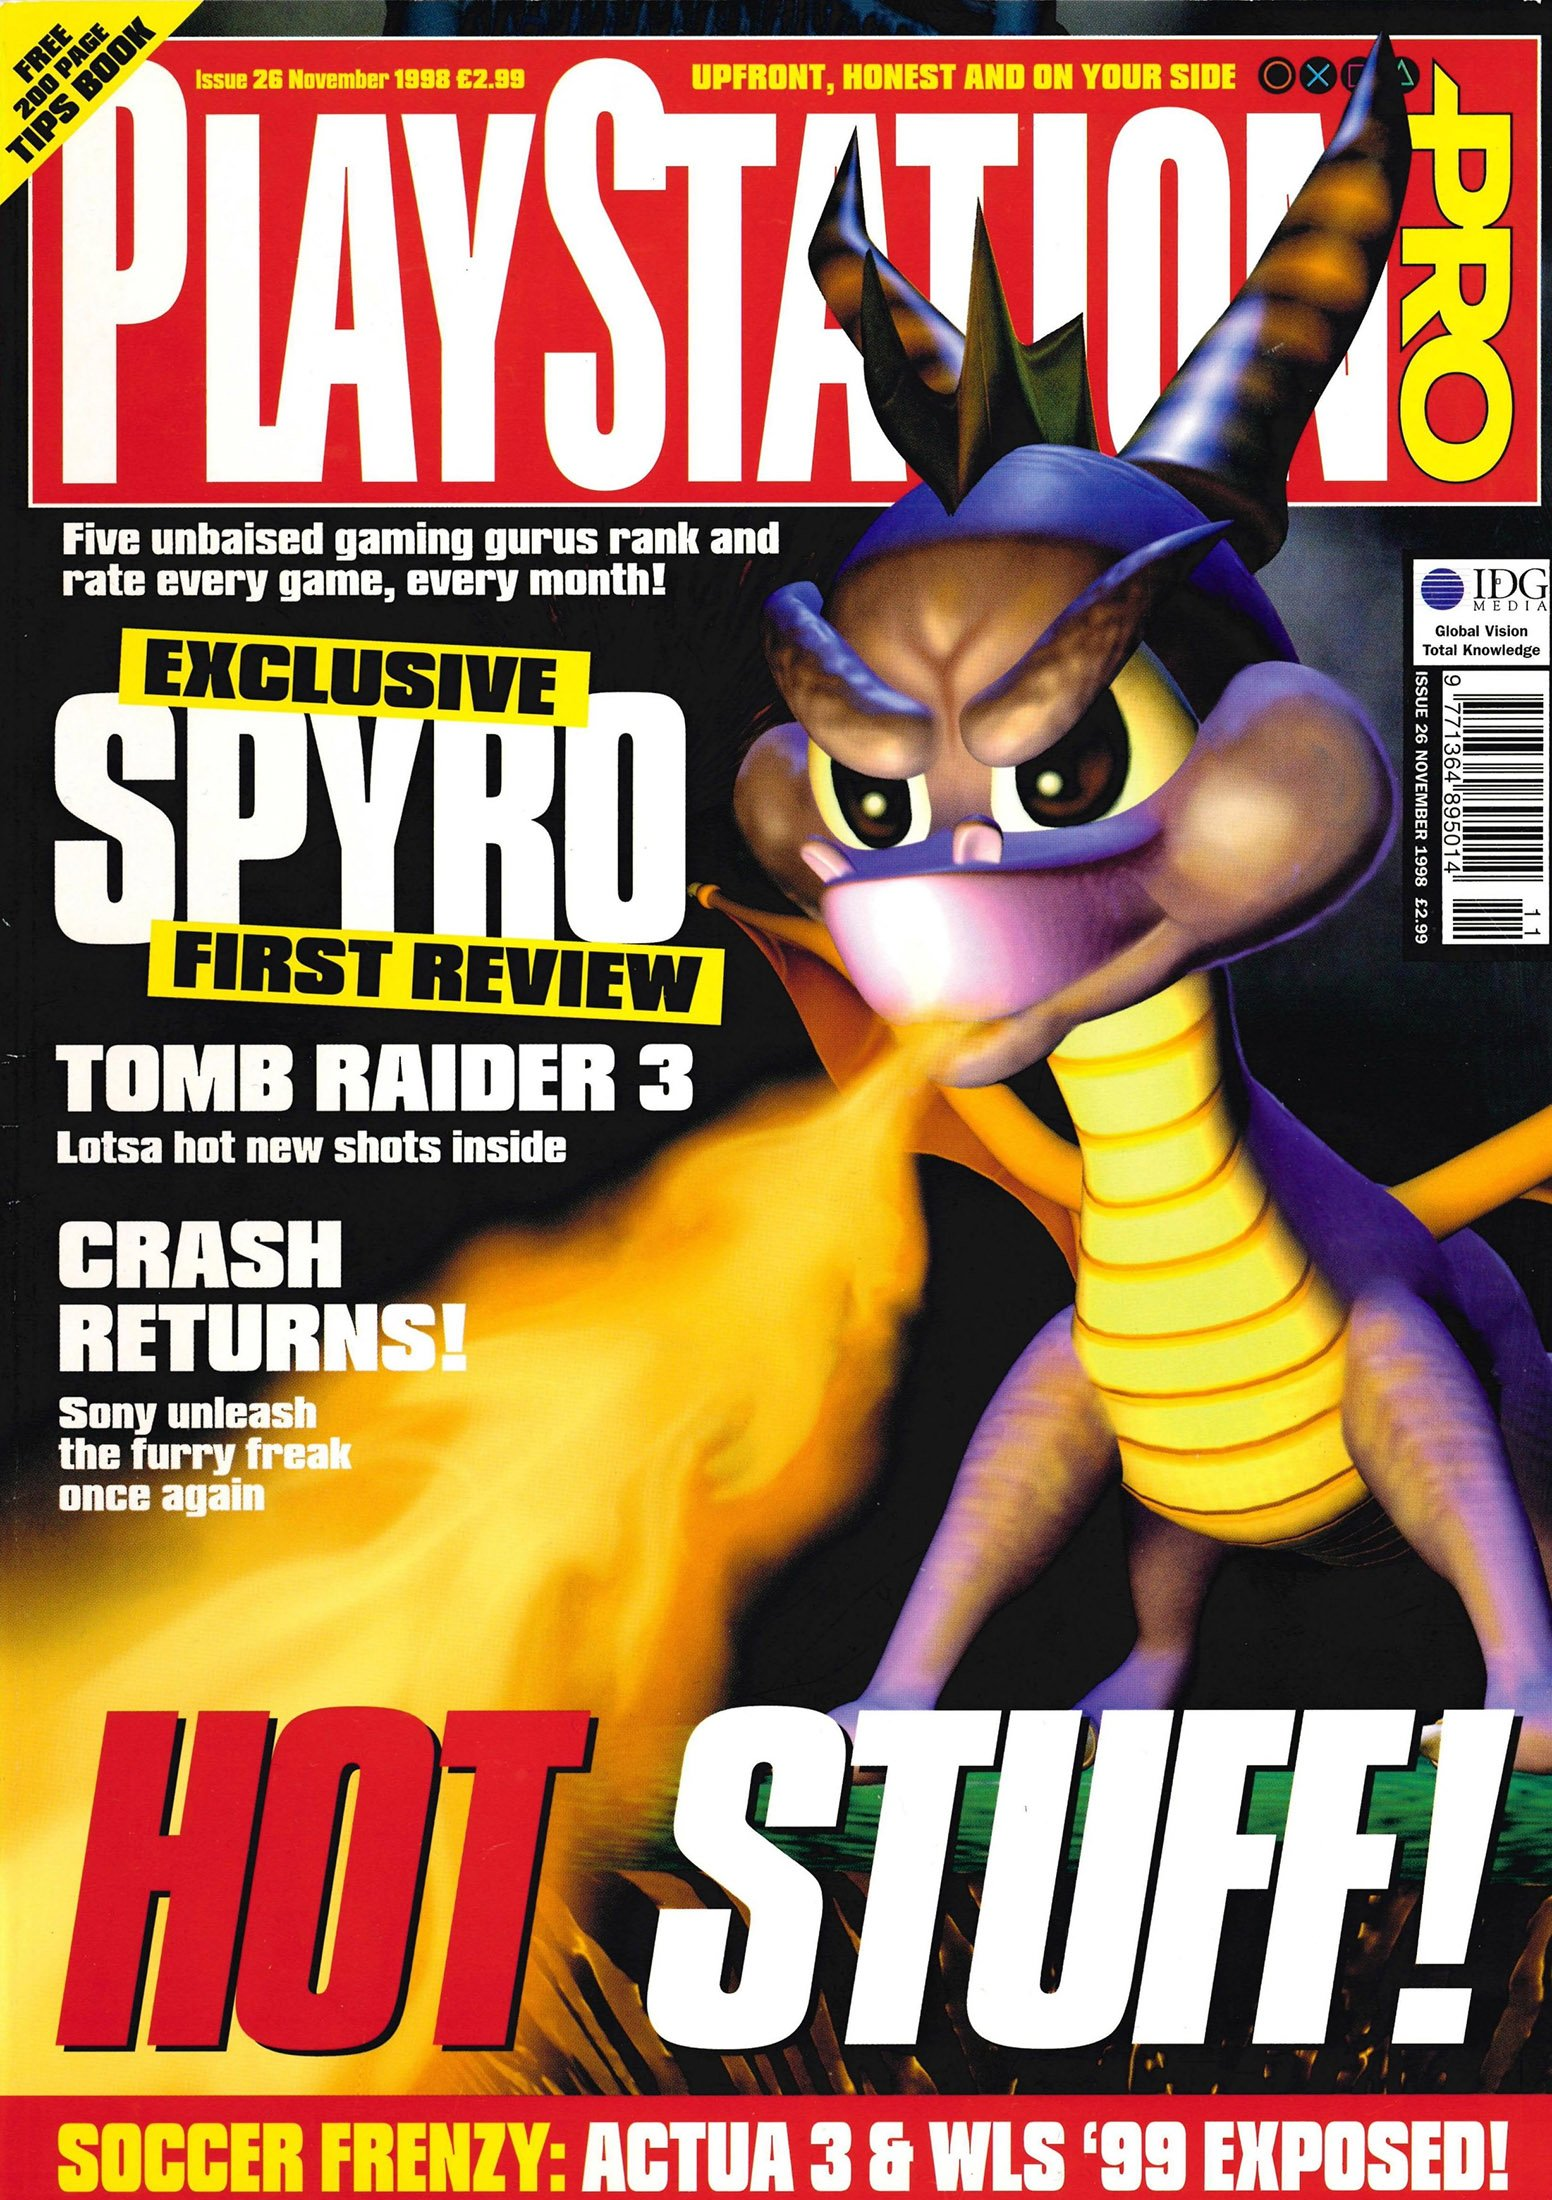 PlayStation Pro Issue 26 (November 1998)